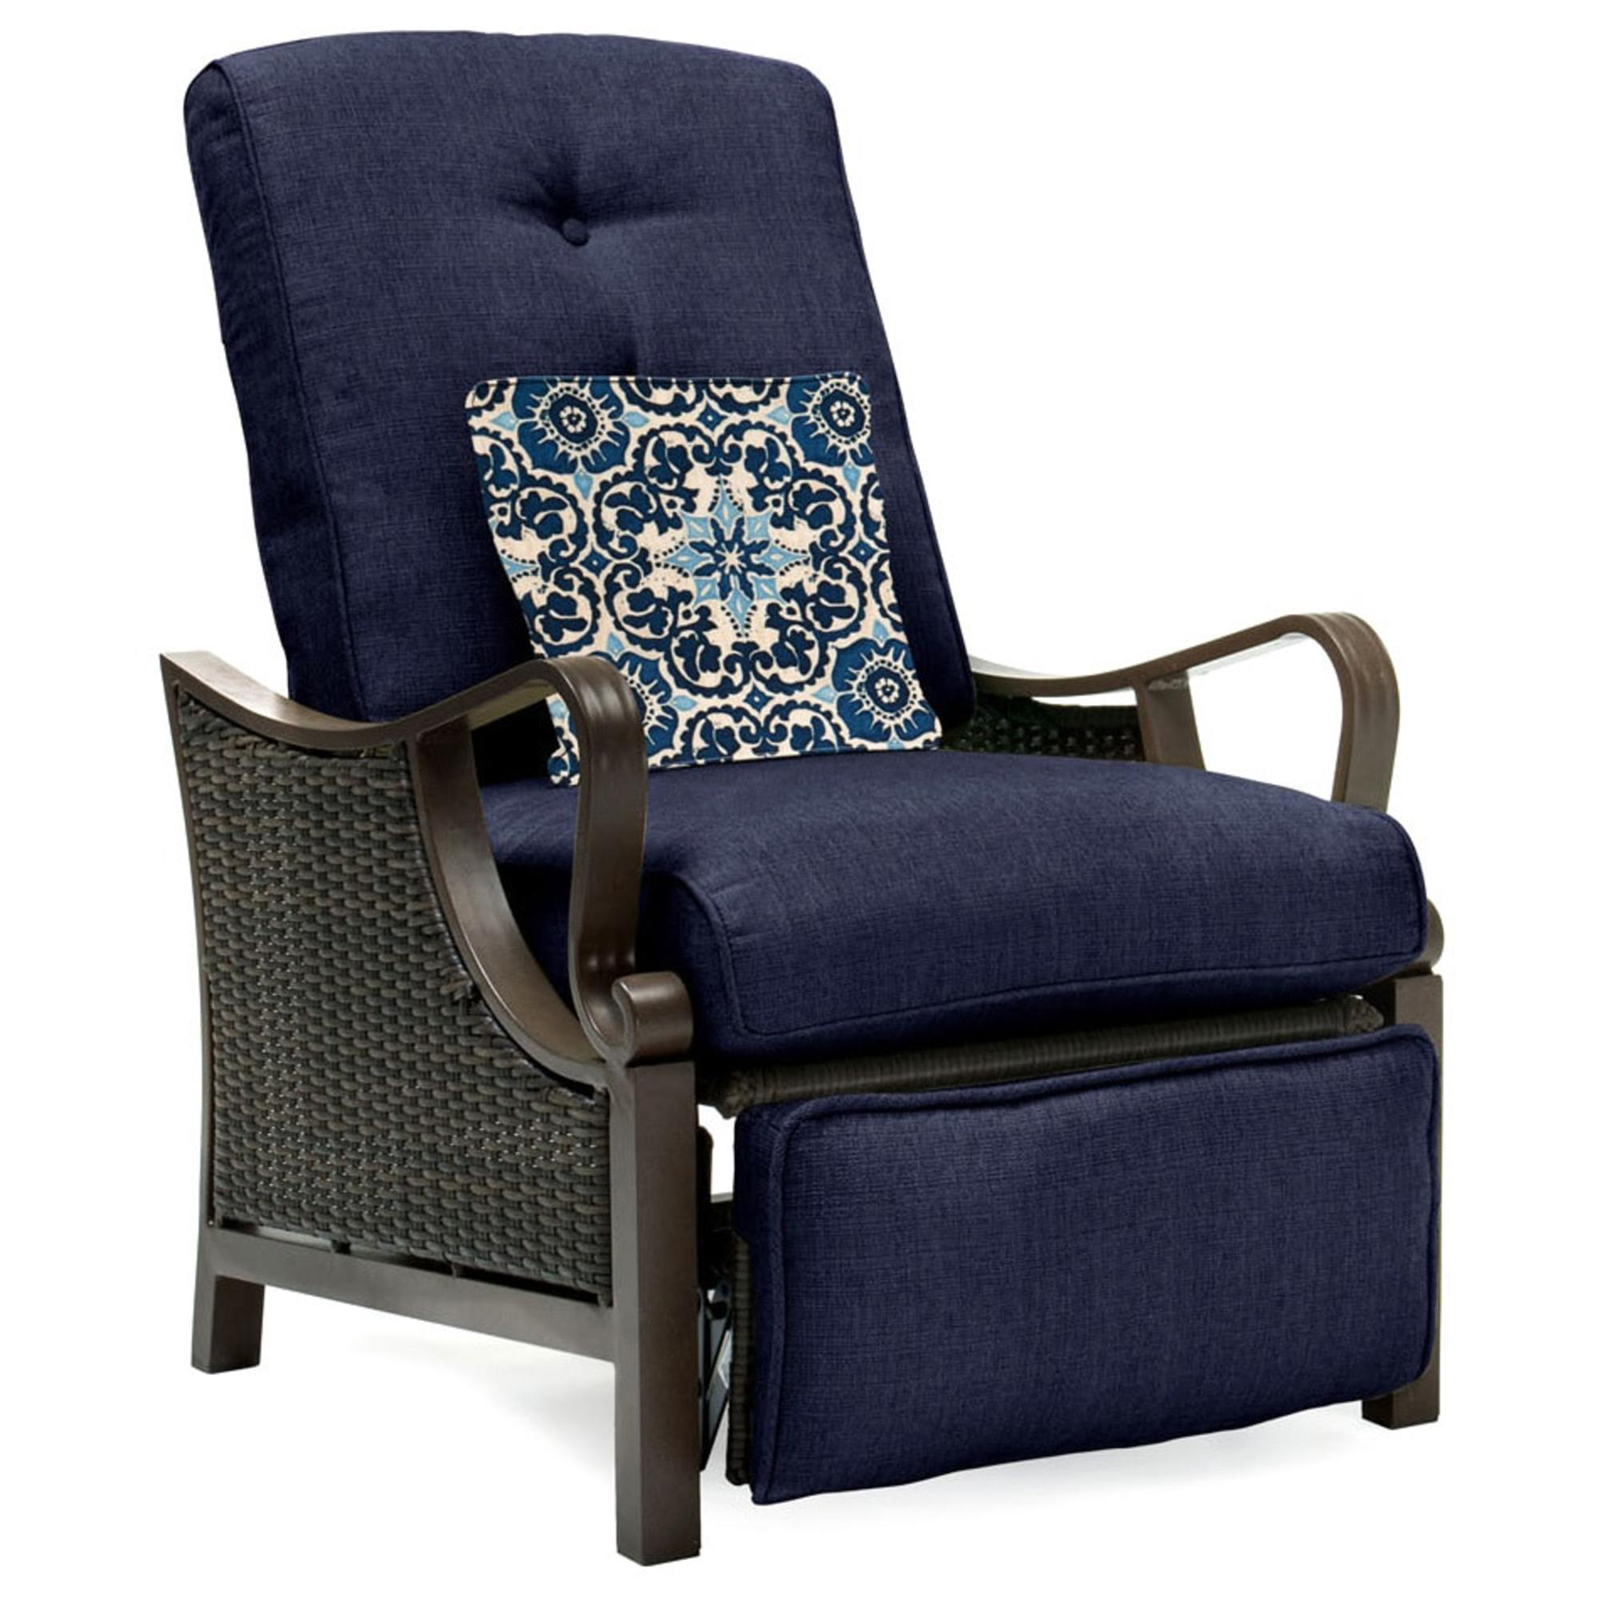 Outdoor Seating   Patio Chairs   Sears Hanover Ventura Navy Blue Steel Resin Outdoor Luxury Recliner Brown Navy